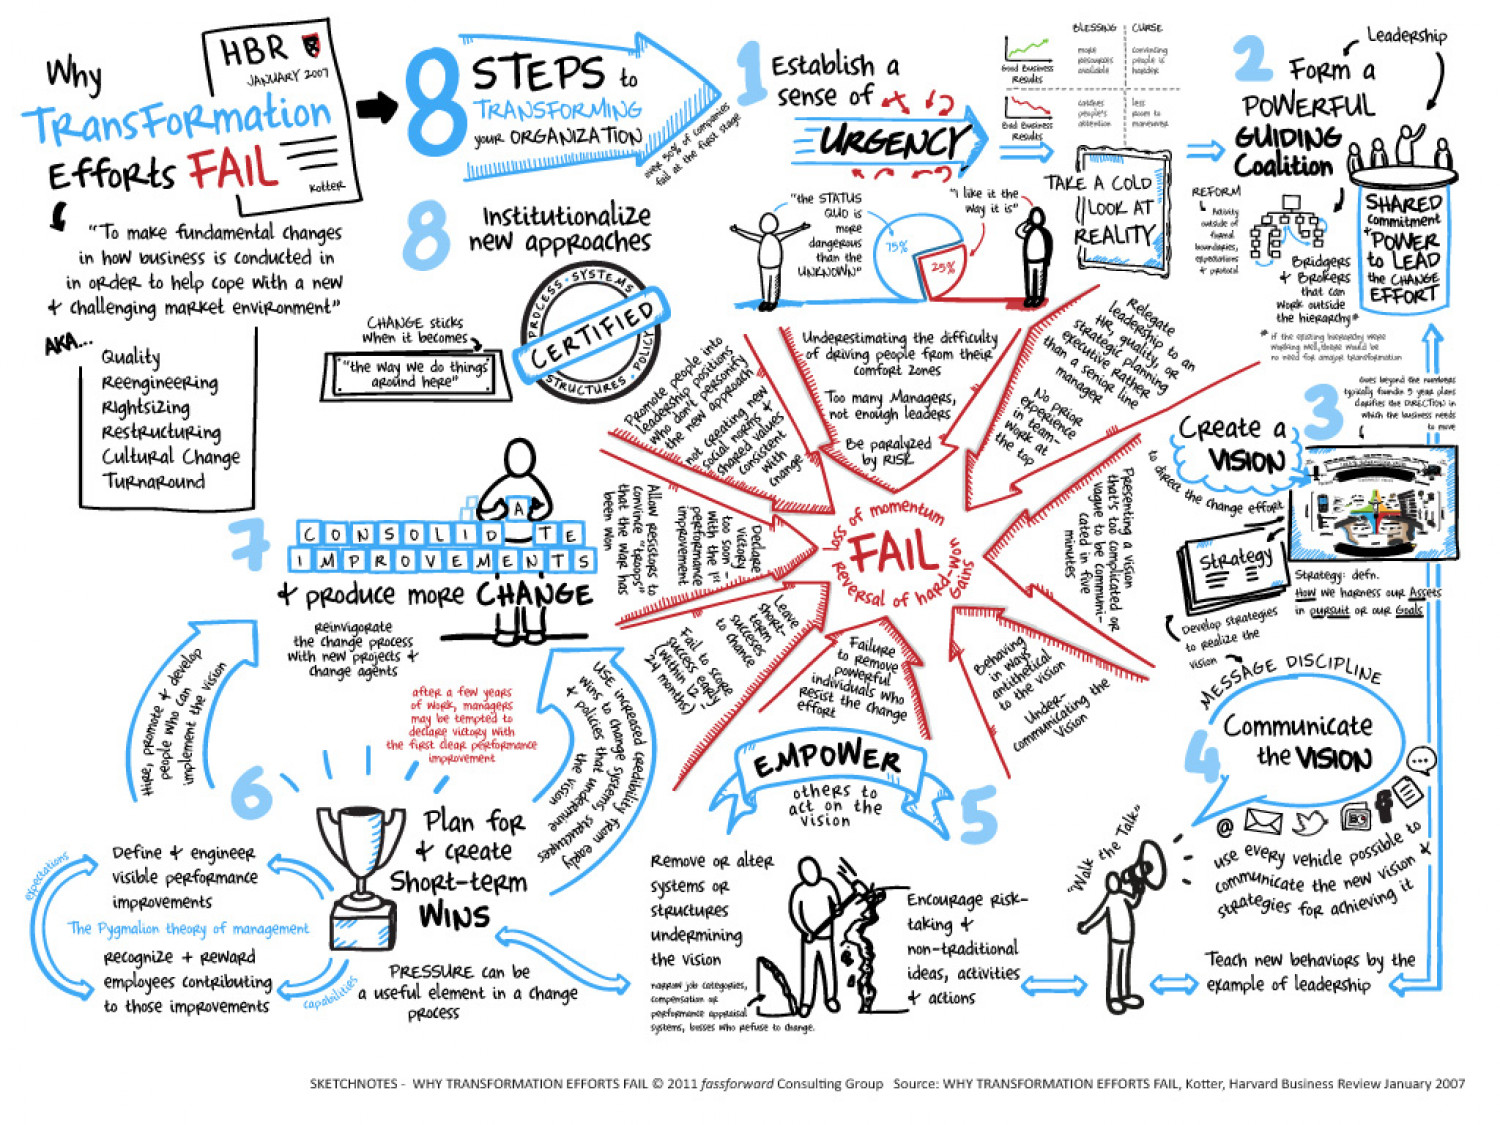 Why Transformation Efforts Fail Infographic